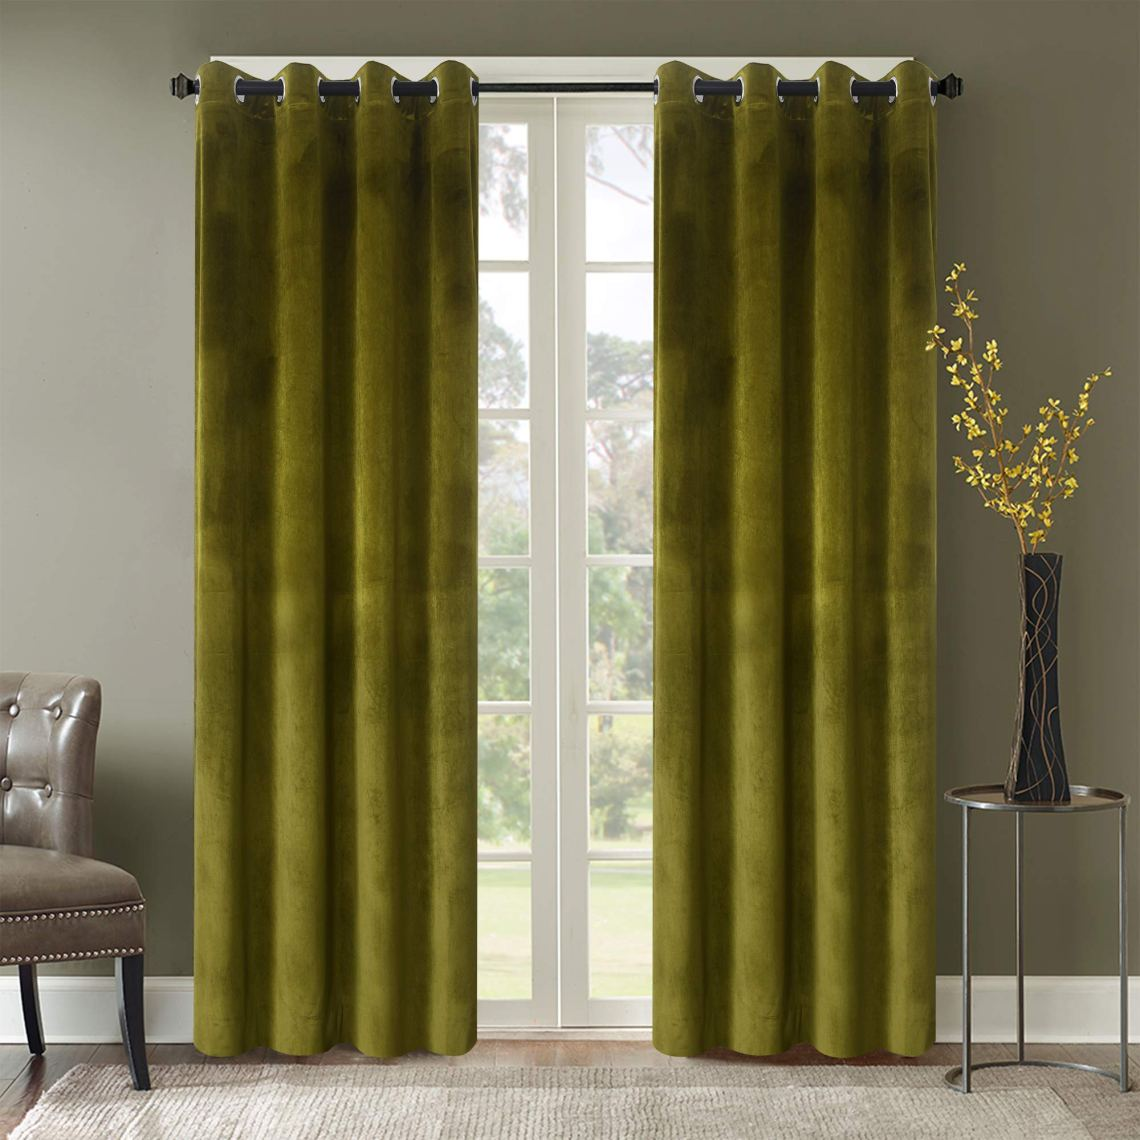 Roslyn Blackout Soft Luxury Velvet Olive Green Curtains Panels For Bedroom Window Treatment Thermal Insulated Solid Grommet Blackout Drapes For Living Room 52wx84l 2 Panels Buy Online In Guernsey At Guernsey Desertcart Com Productid